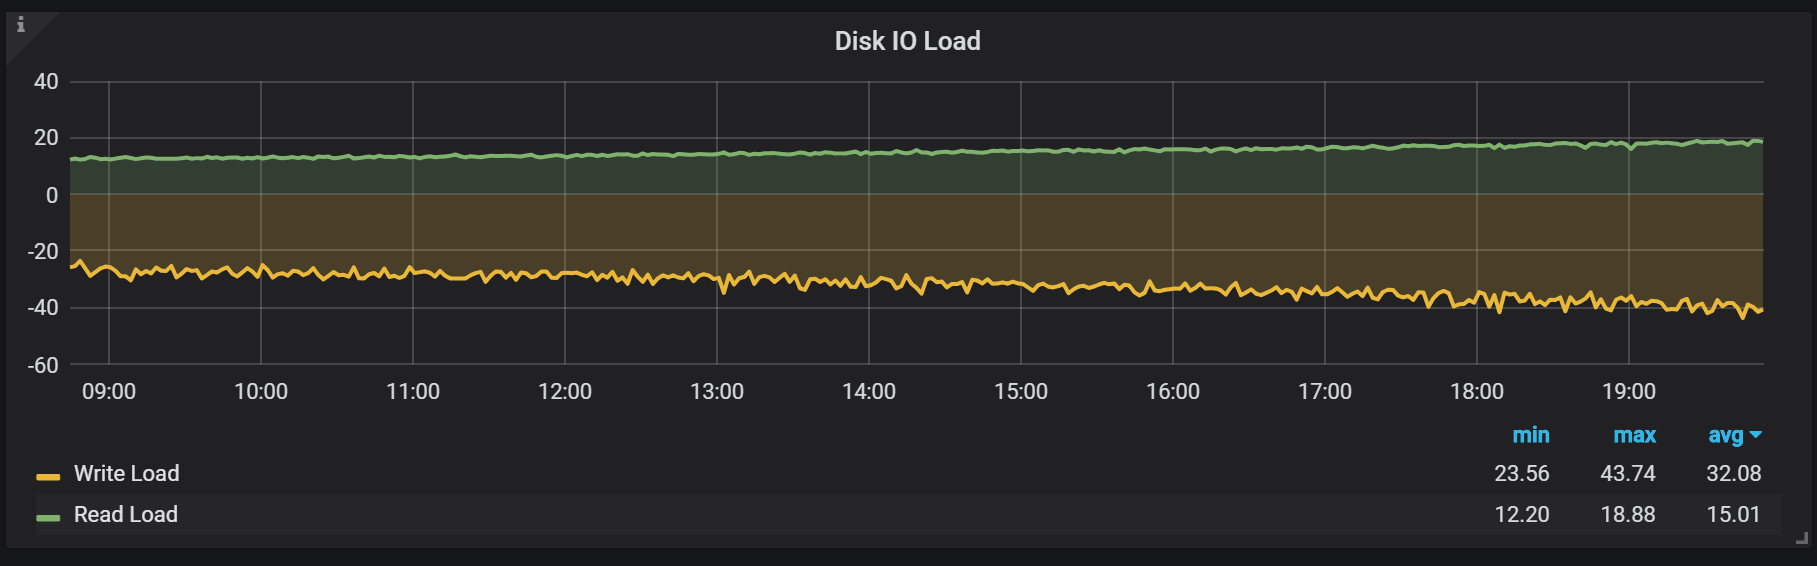 disk io load